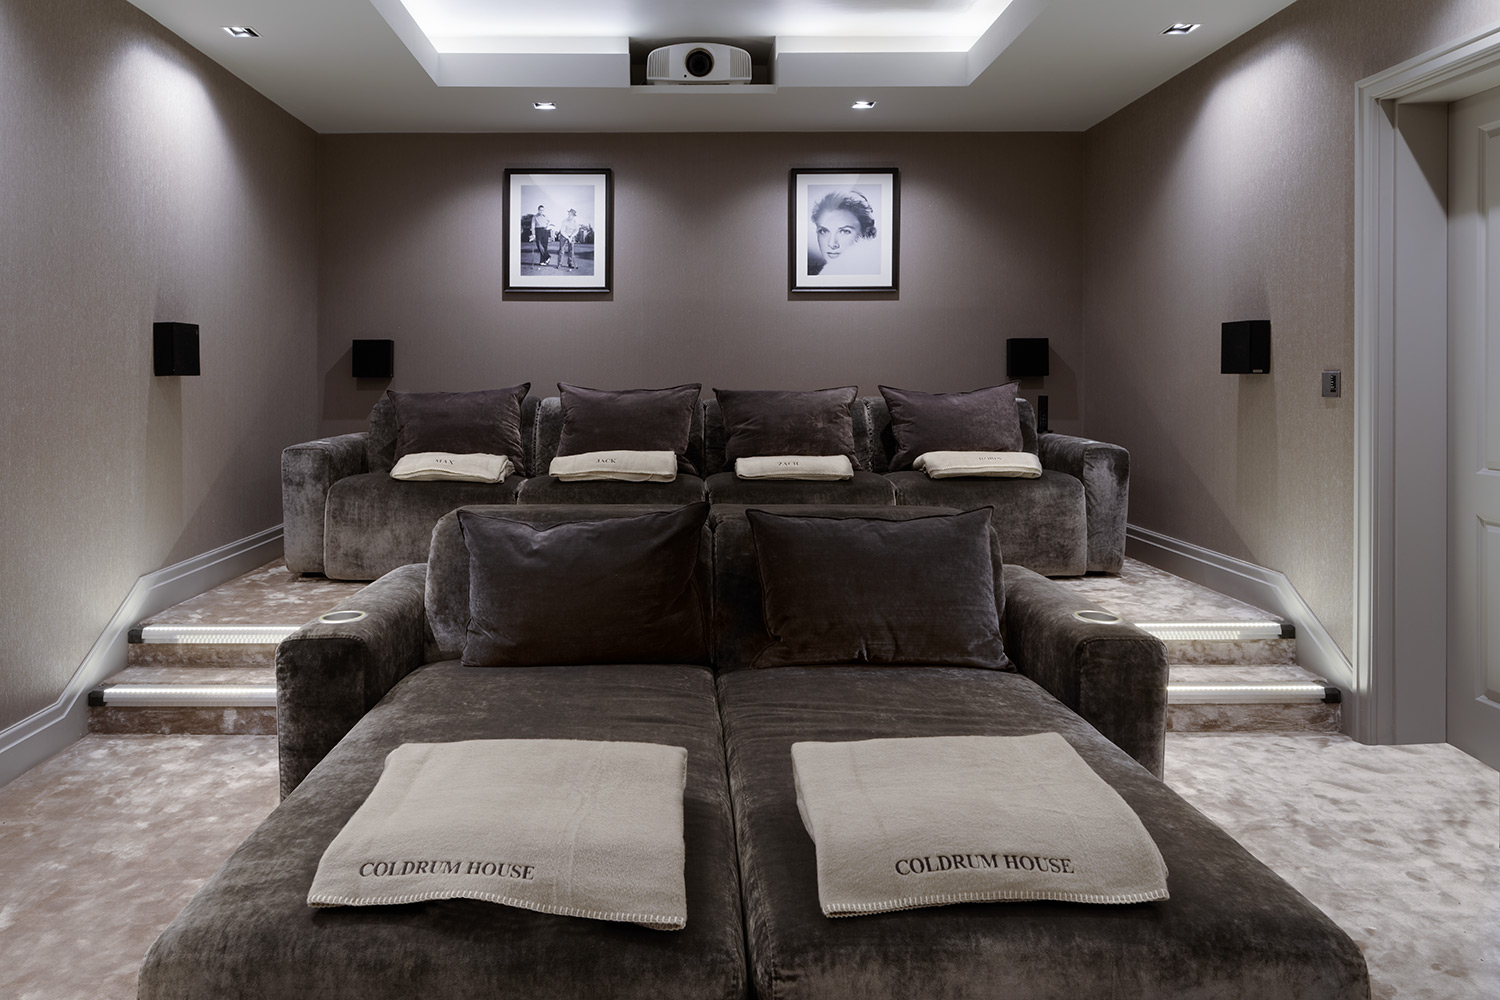 Theatre Room Furniture Luxury Home Cinema Seating Home Cinema Installation